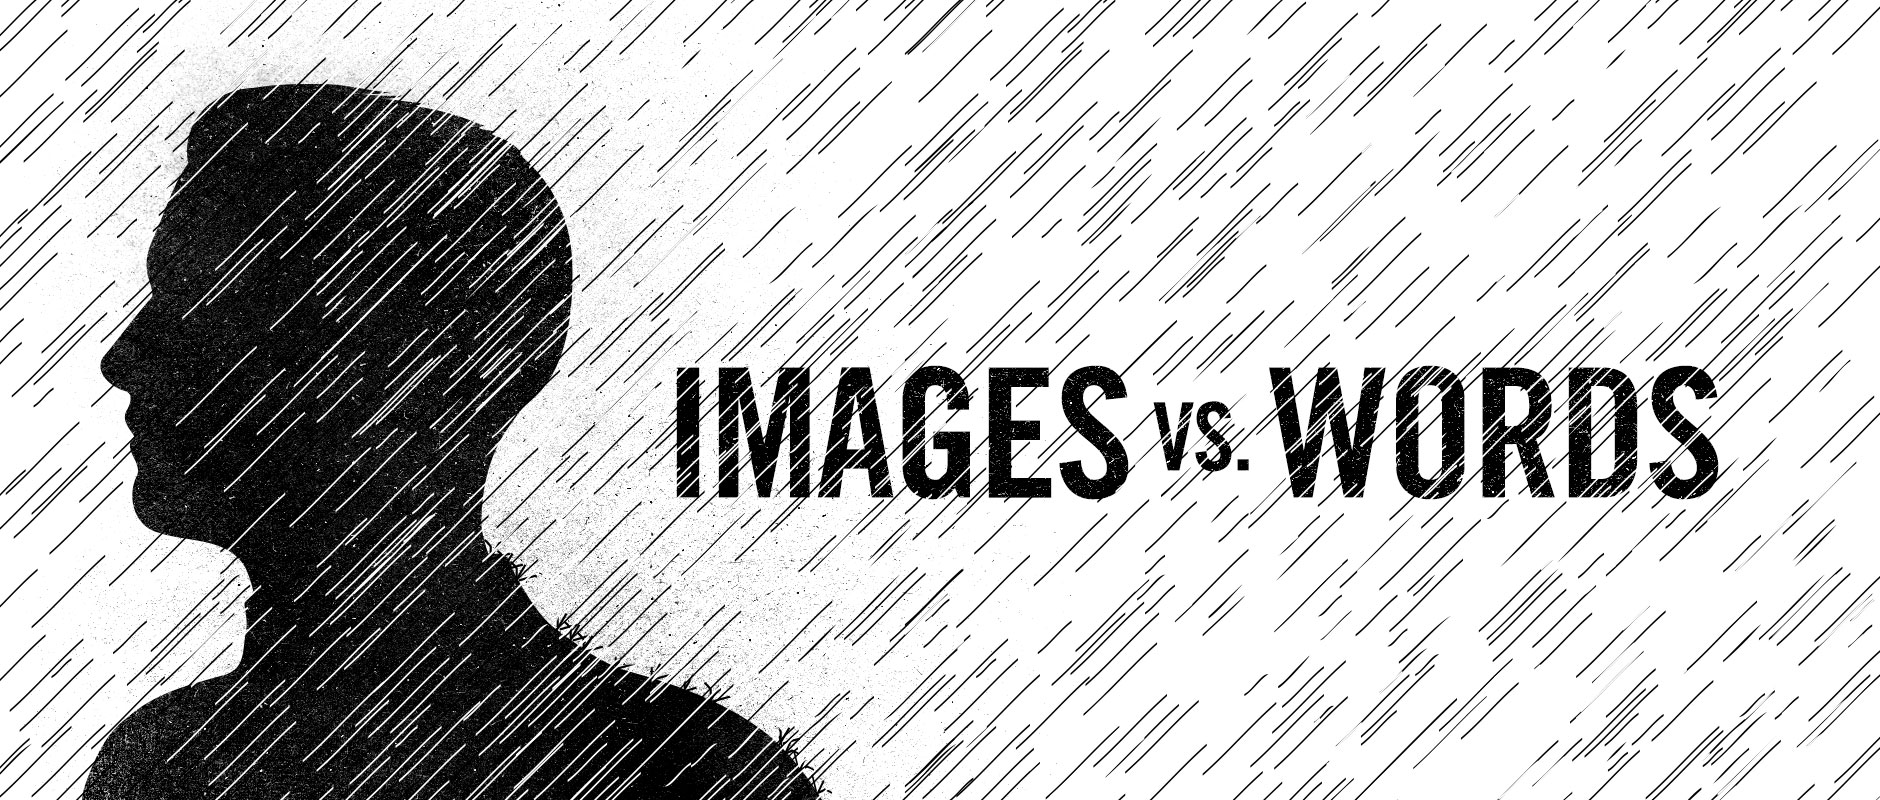 Joe-Images vs Words Blog-Header